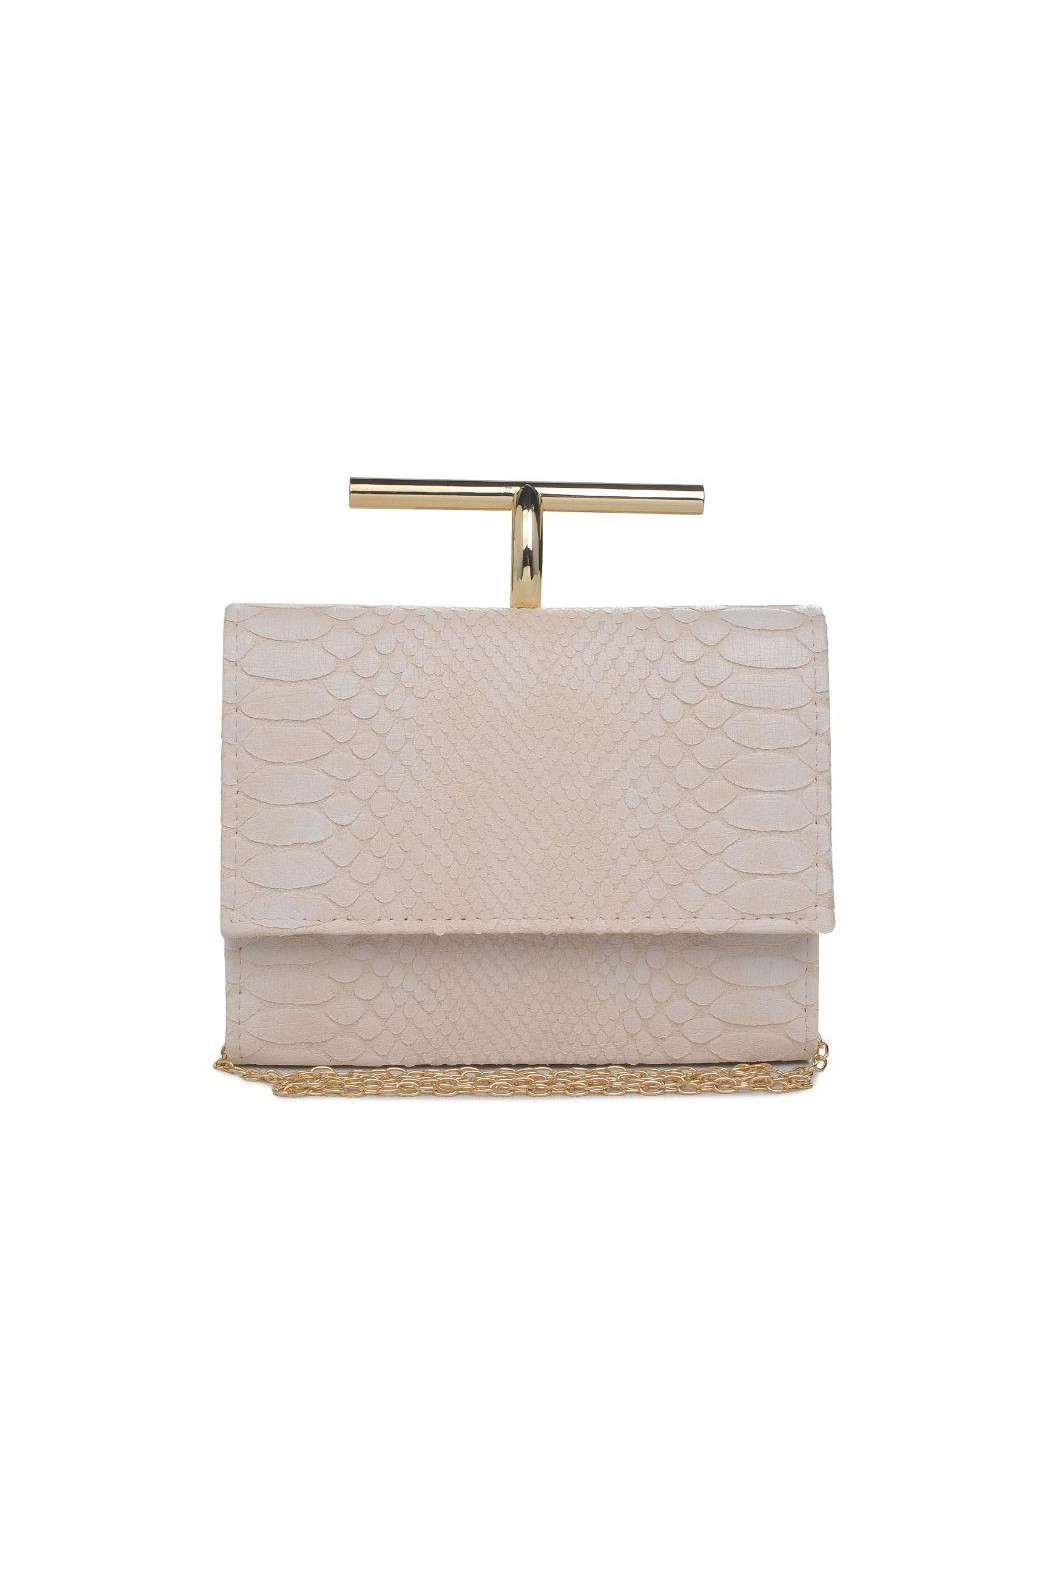 Urban Expressions Posey Mini Bag - Front Cropped Image